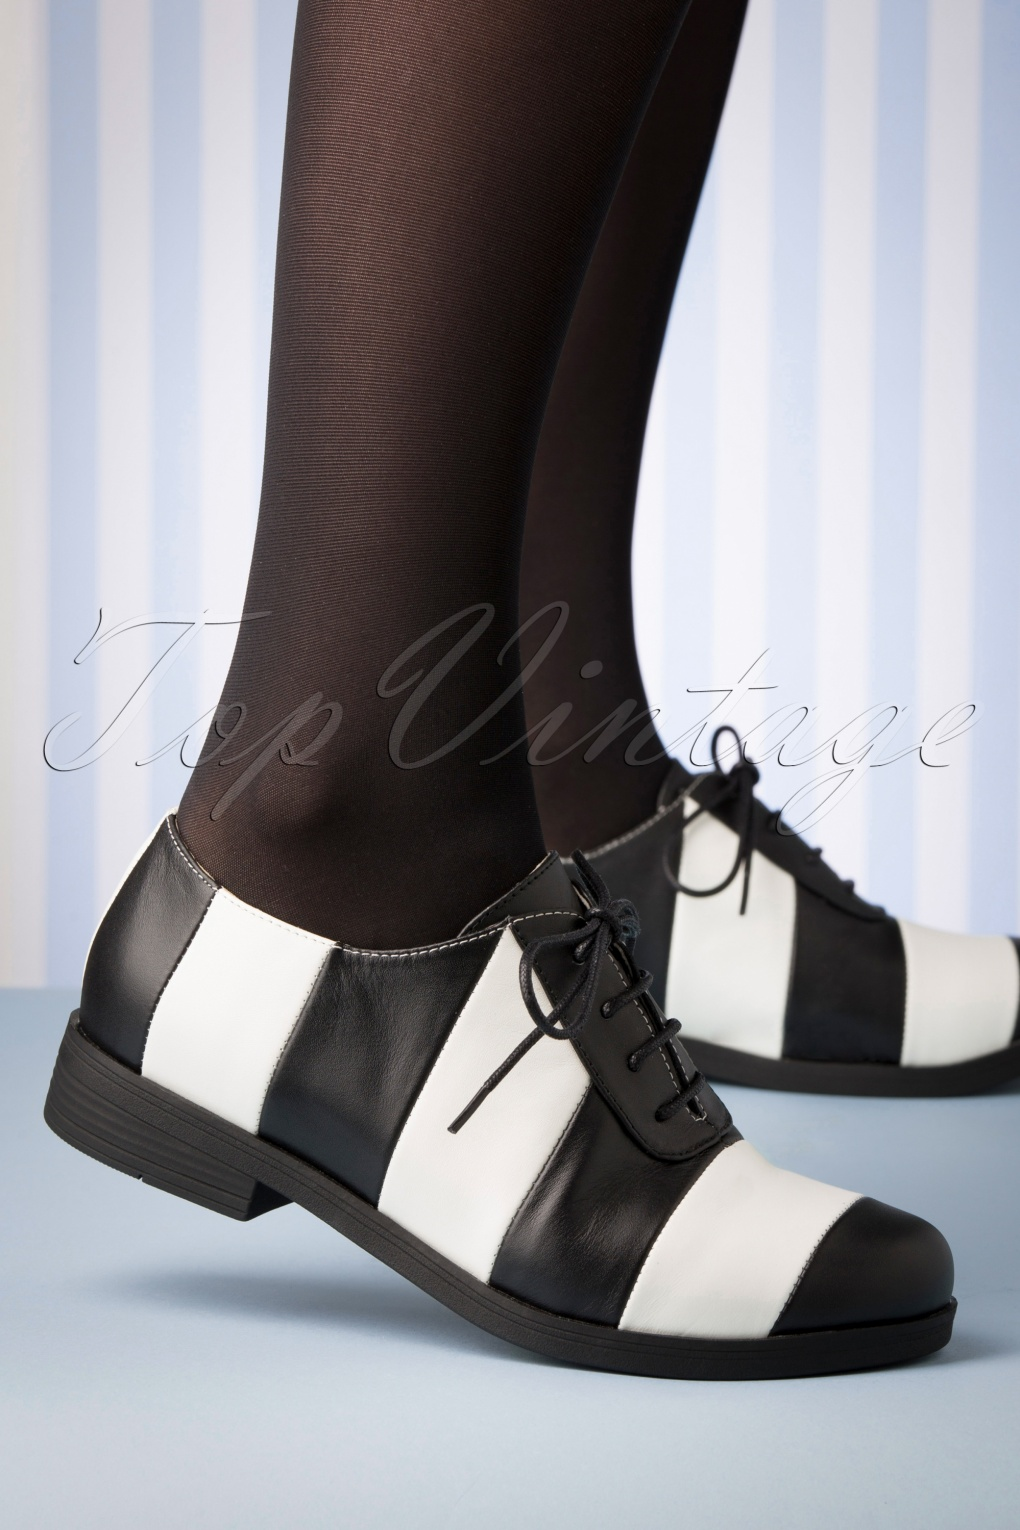 Retro Vintage Flats and Low Heel Shoes 60s Allison Butterfly Flats in Black and White £136.25 AT vintagedancer.com